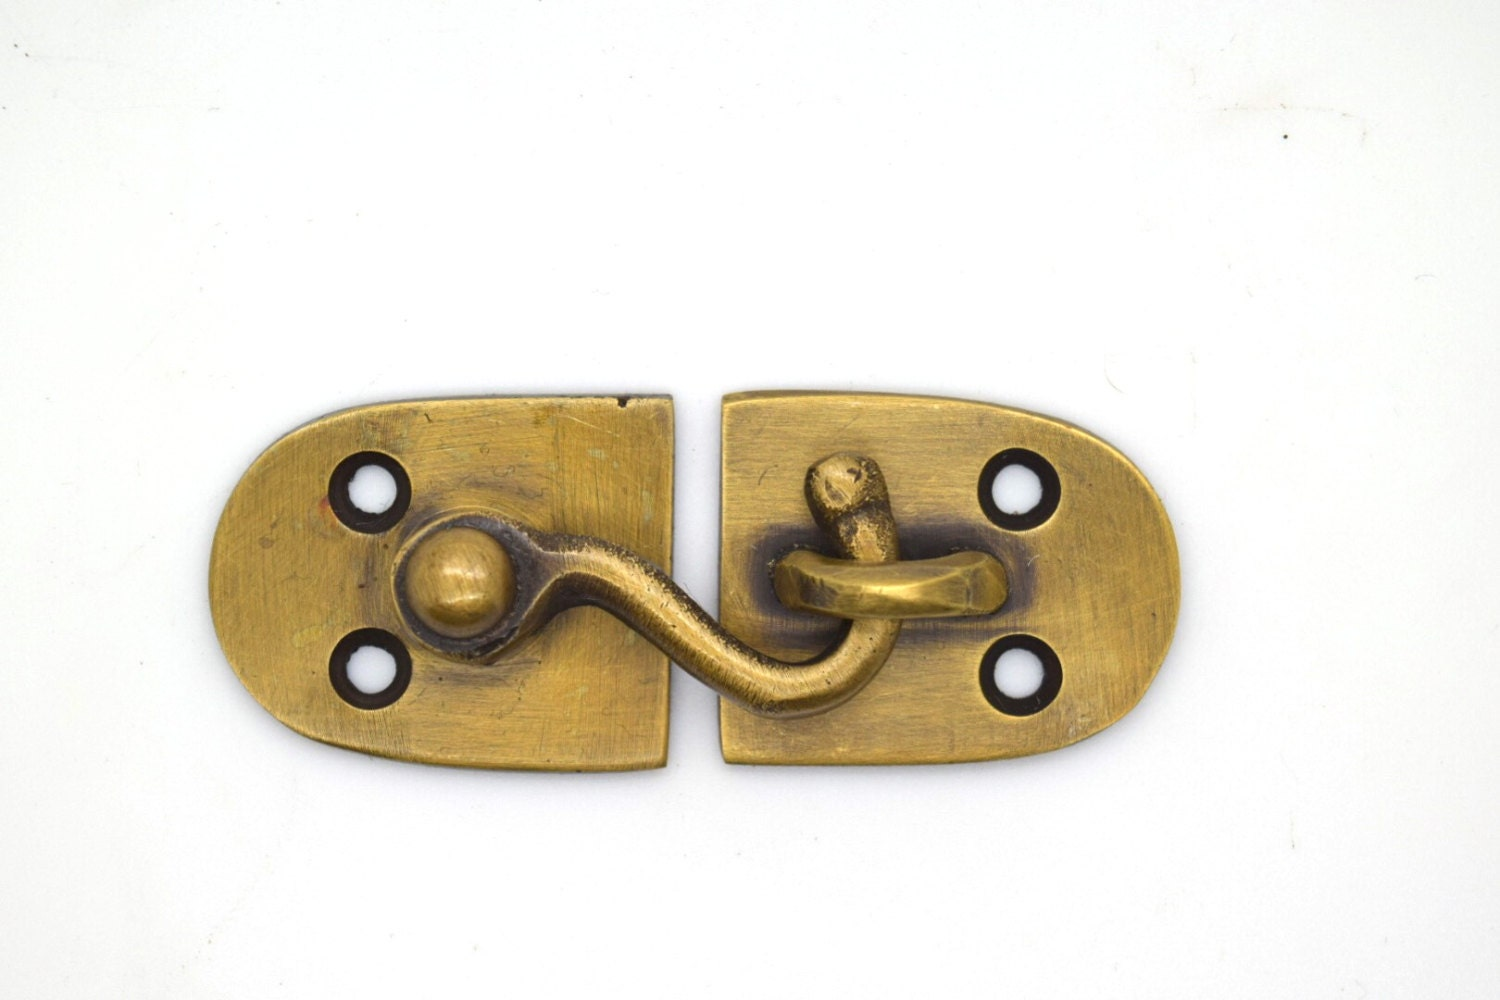 Cupboard Catch Lock Bolt Brass Cabinet Hardware